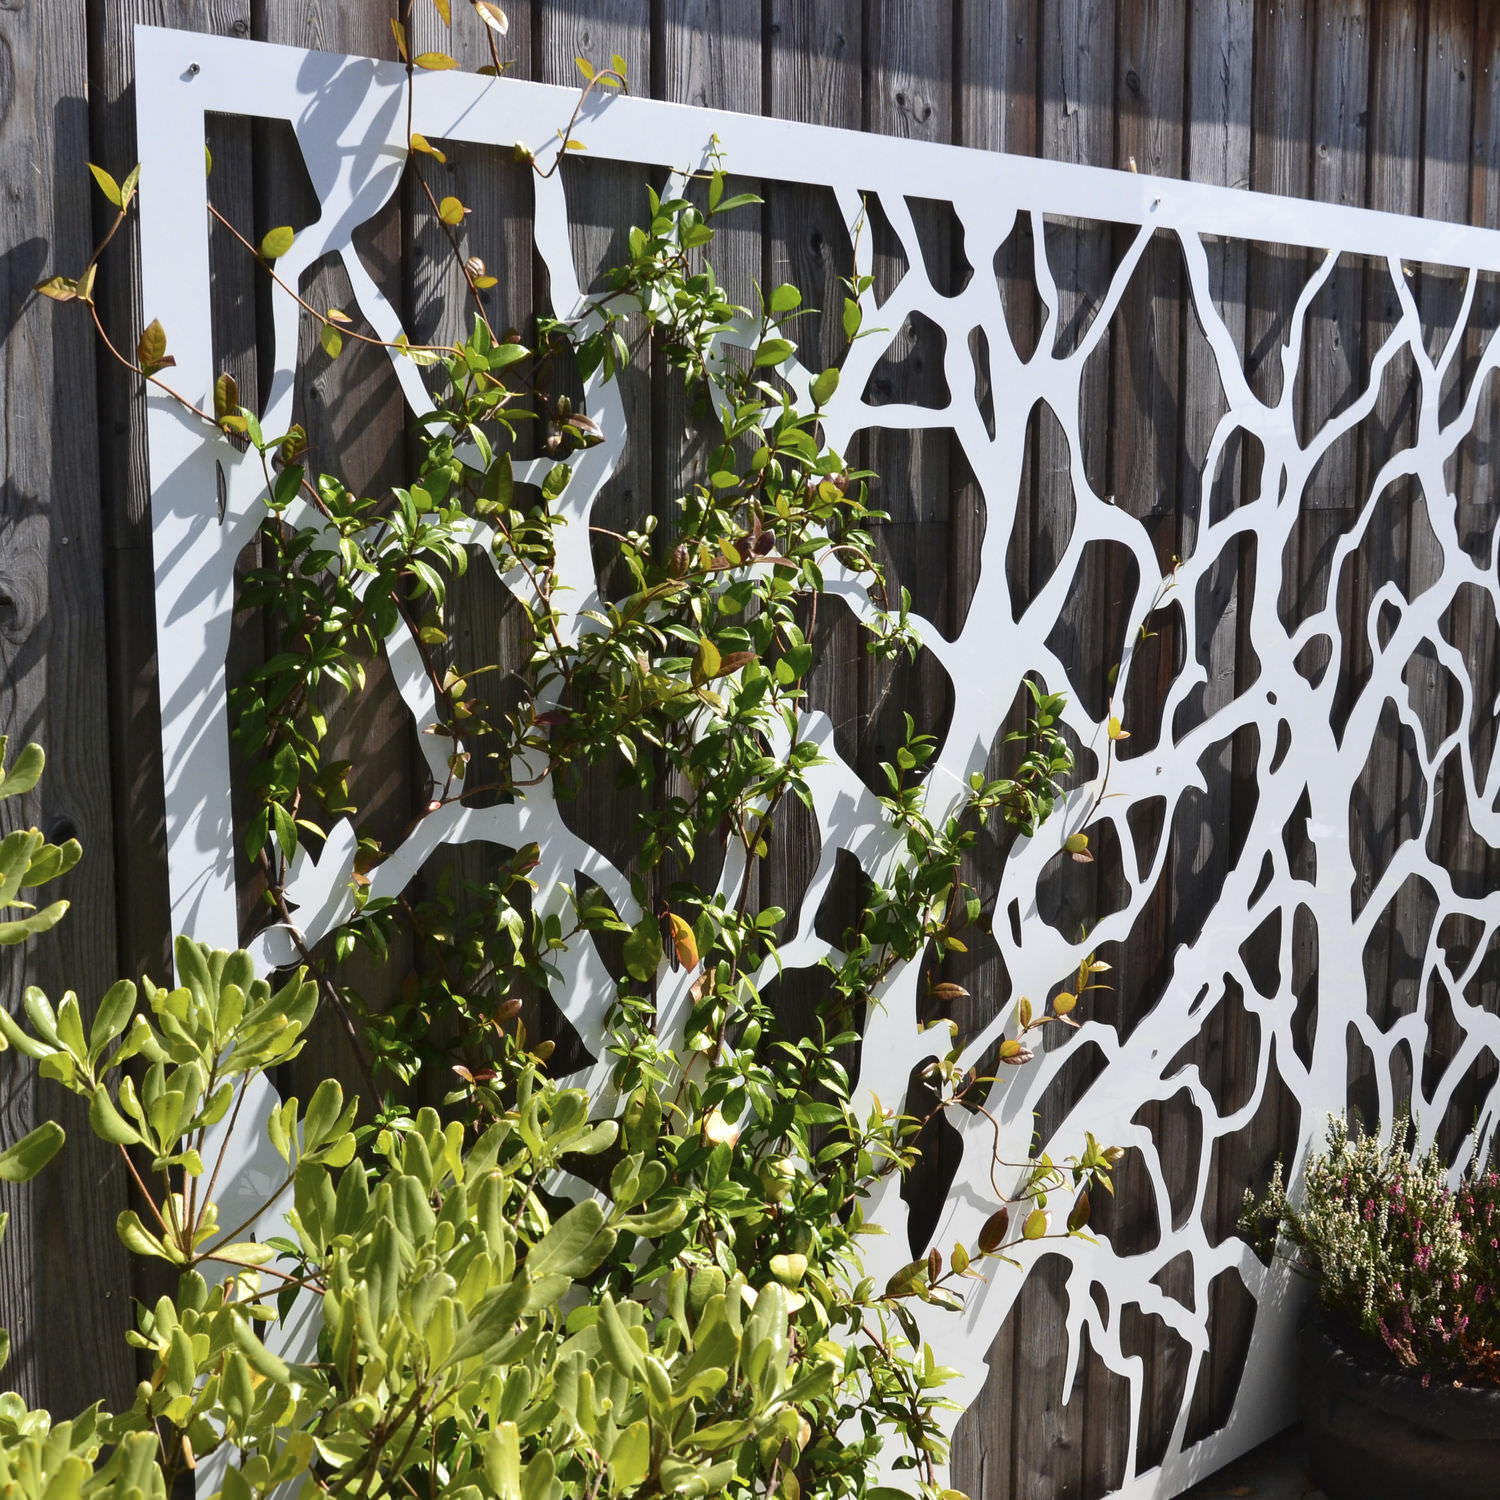 Green wall trellis painted metal FRESQUE PALISSA DESIGN